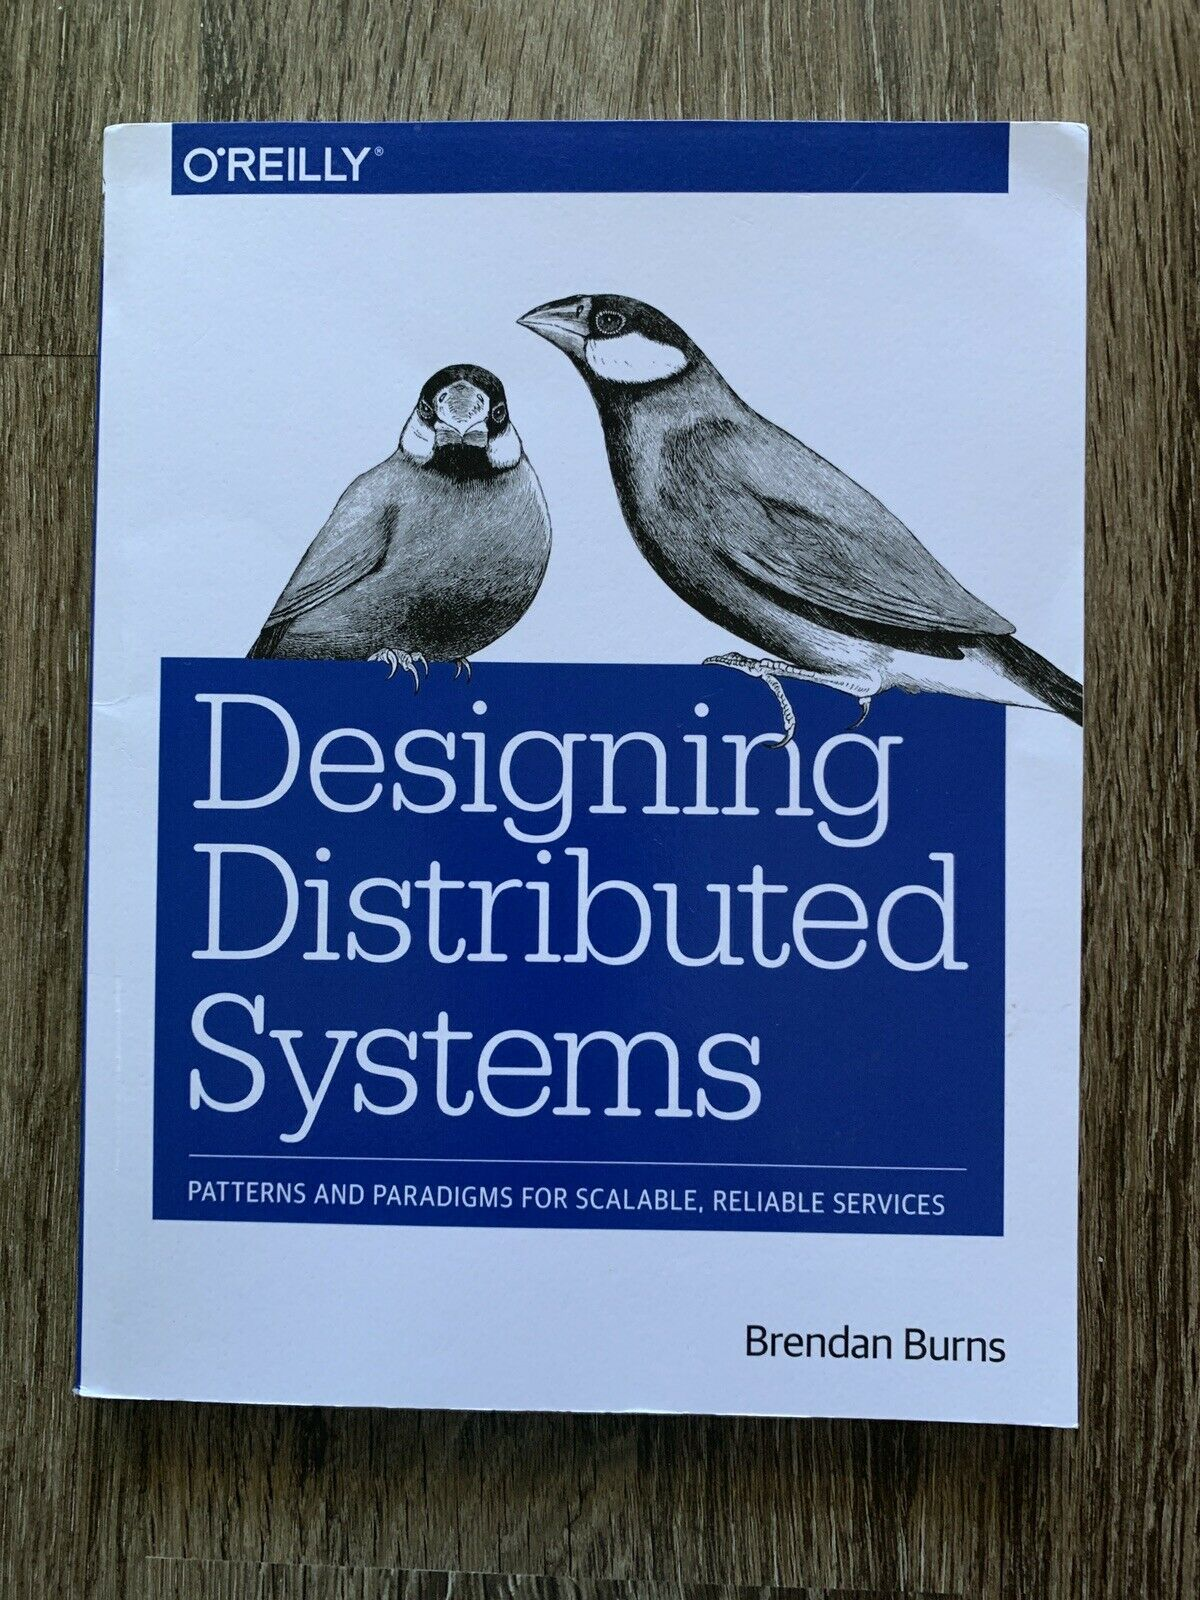 Designing Distributed Systems Patterns And Paradigms For Scalable Reliable Services By Brendan Burns 2018 Trade Paperback For Sale Online Ebay